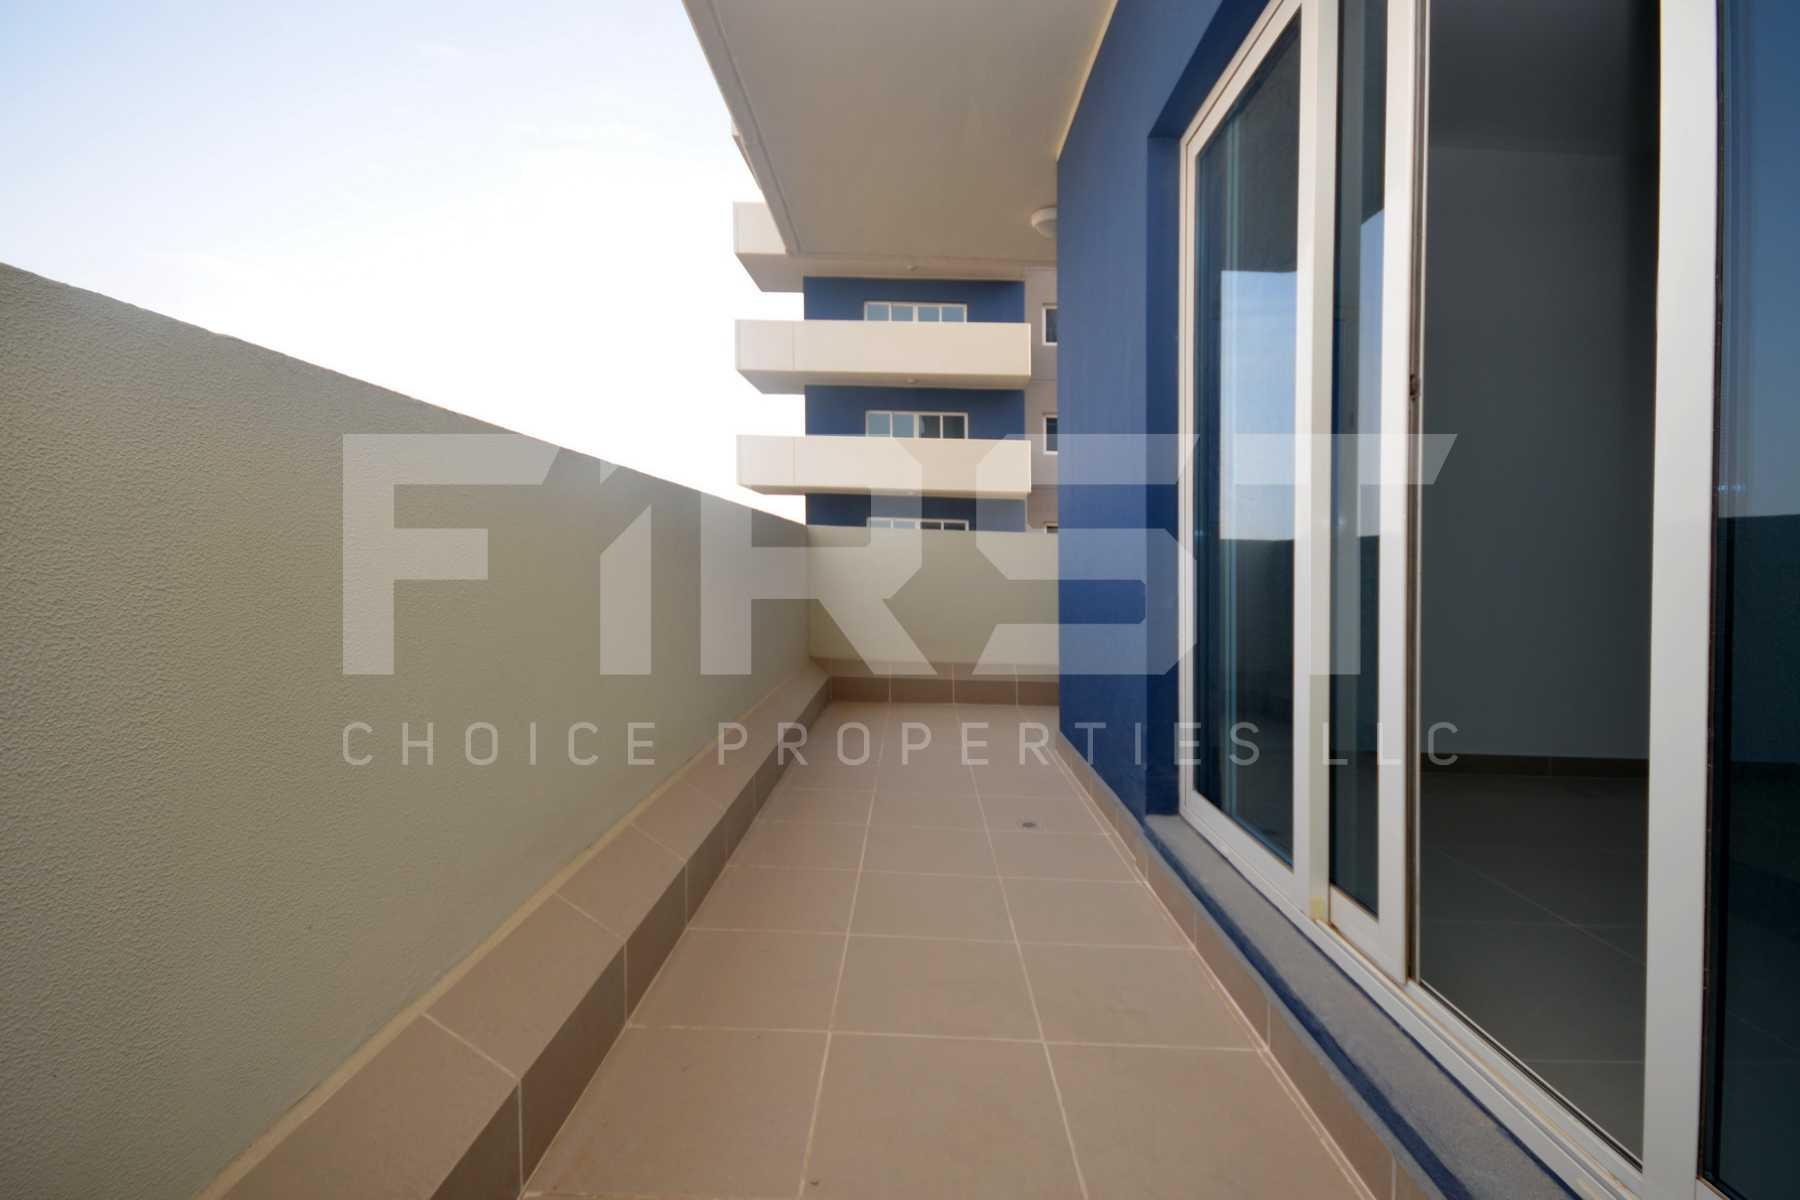 8. Internal Photo of 3 Bedroom Apartment Type D Open Kitchen in Al Reef Downtown Al Reef Abu Dhabi UAE 145sq.m 1560 sq.ft (19).jpg